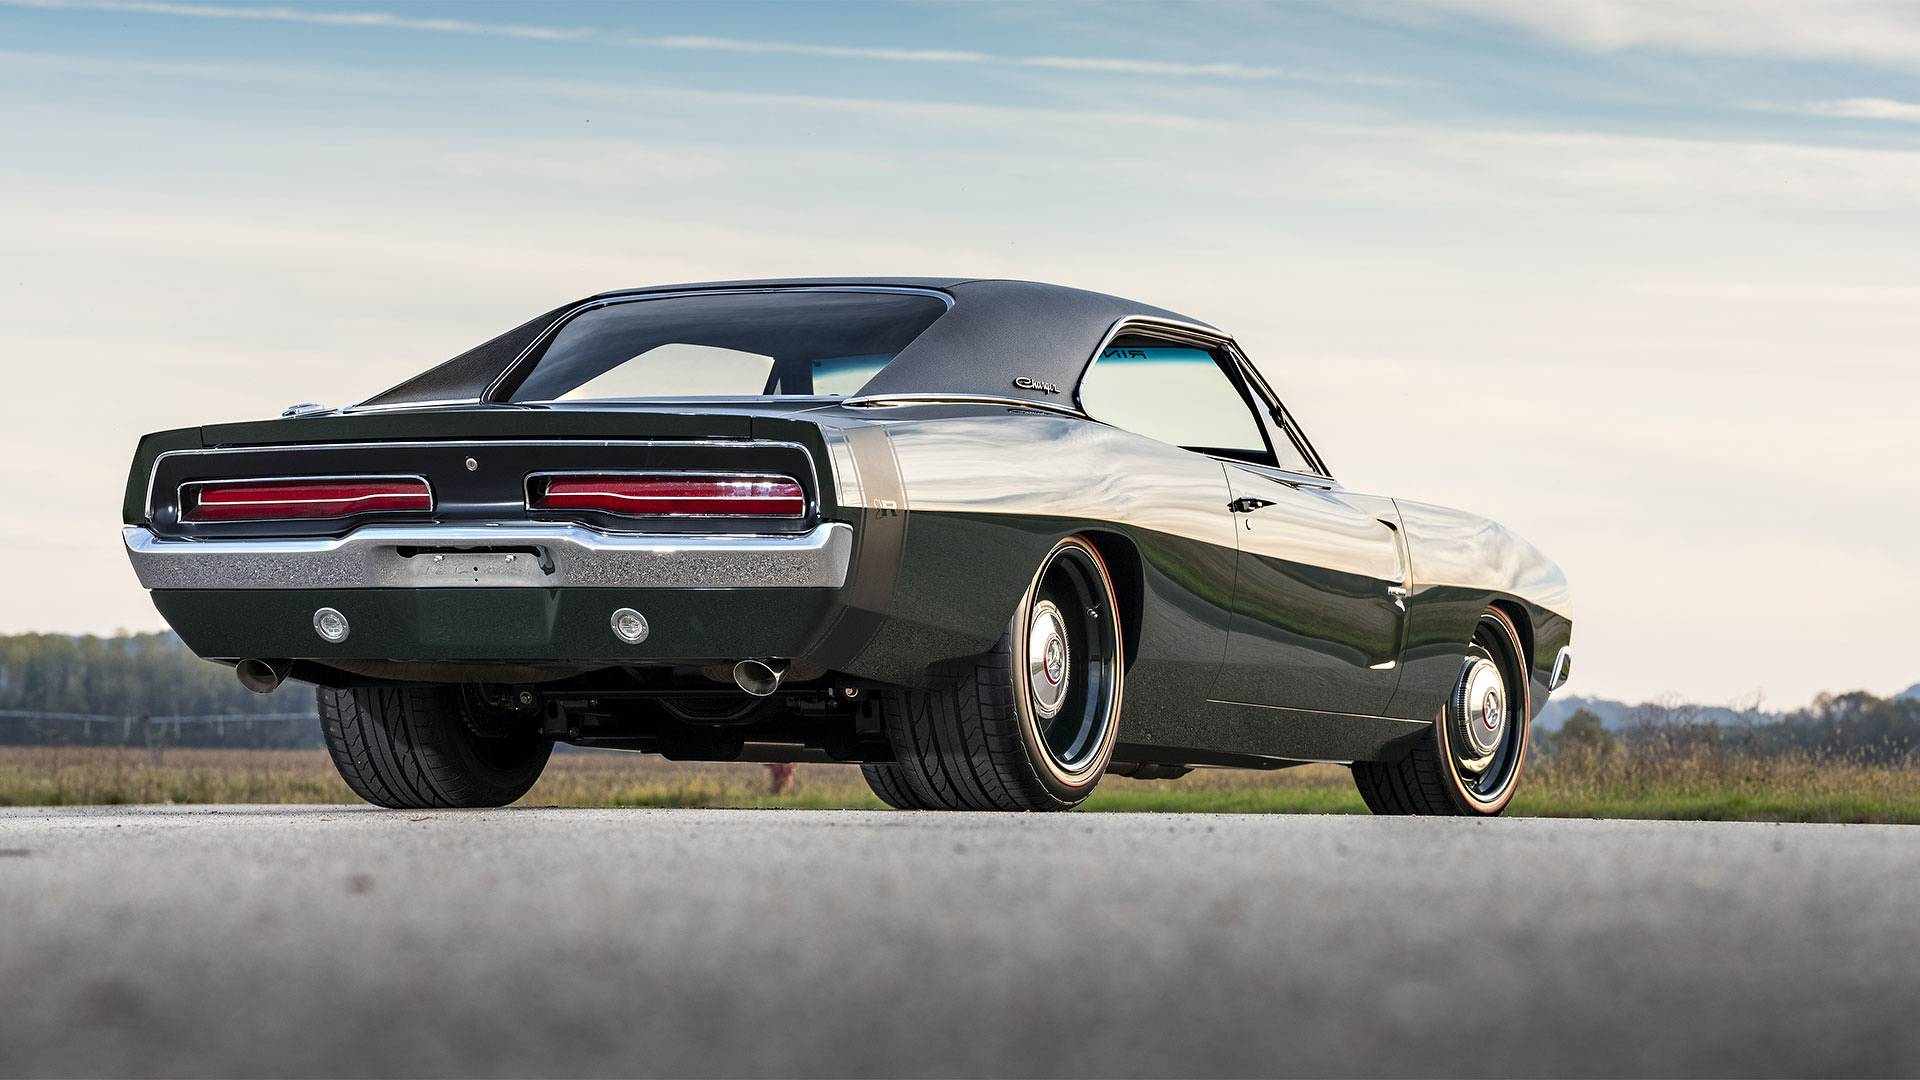 Defector 1969 Dodge Charger Is Ringbrothers' First Mopar Build